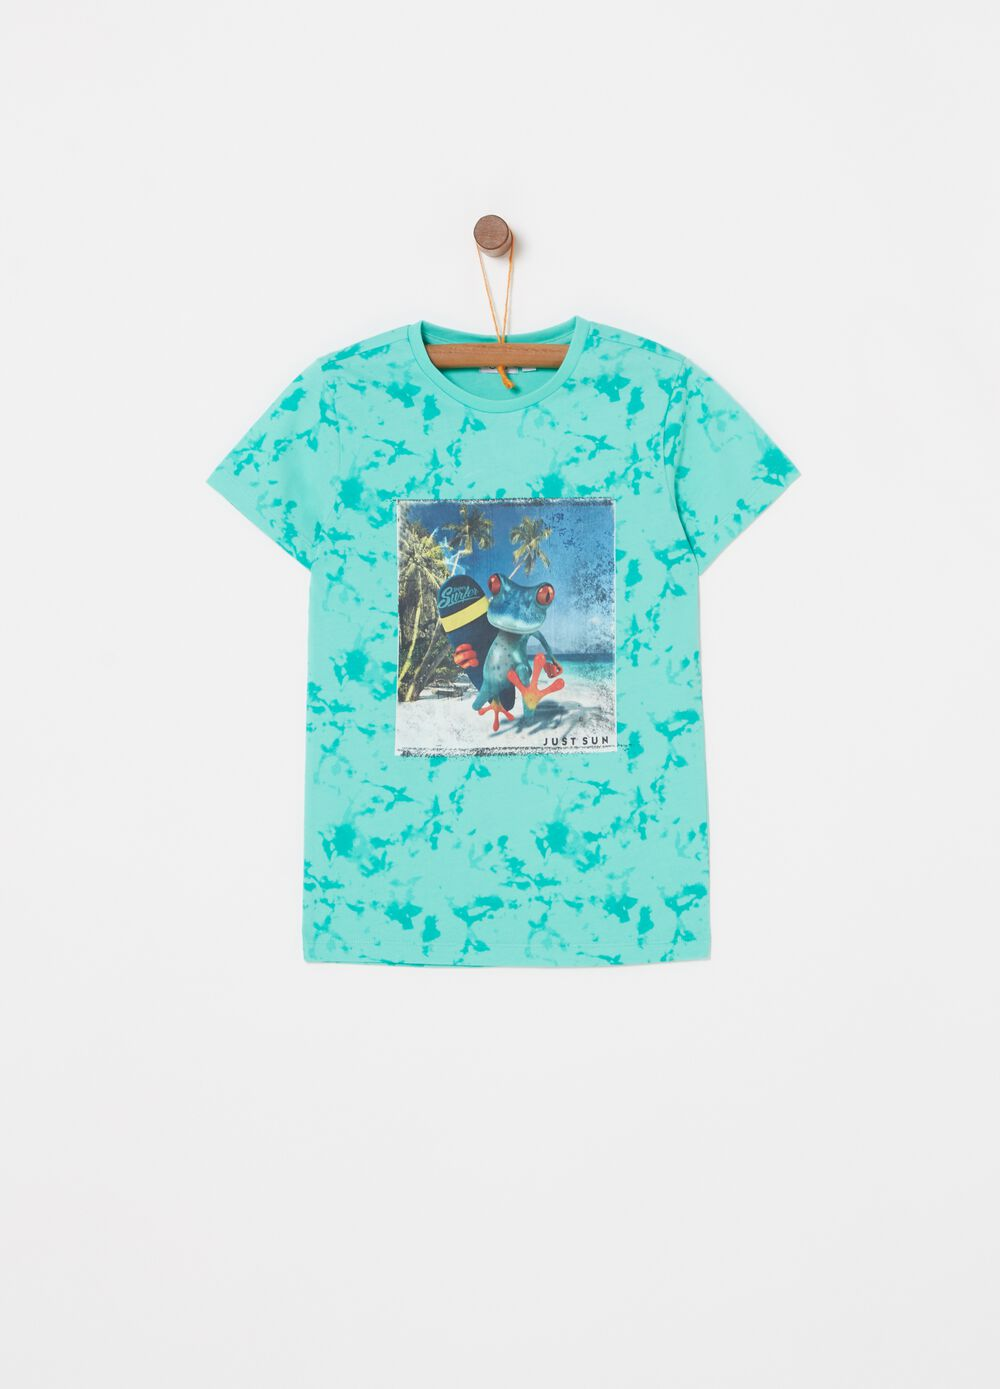 Misdyed-effect T-shirt with surf print